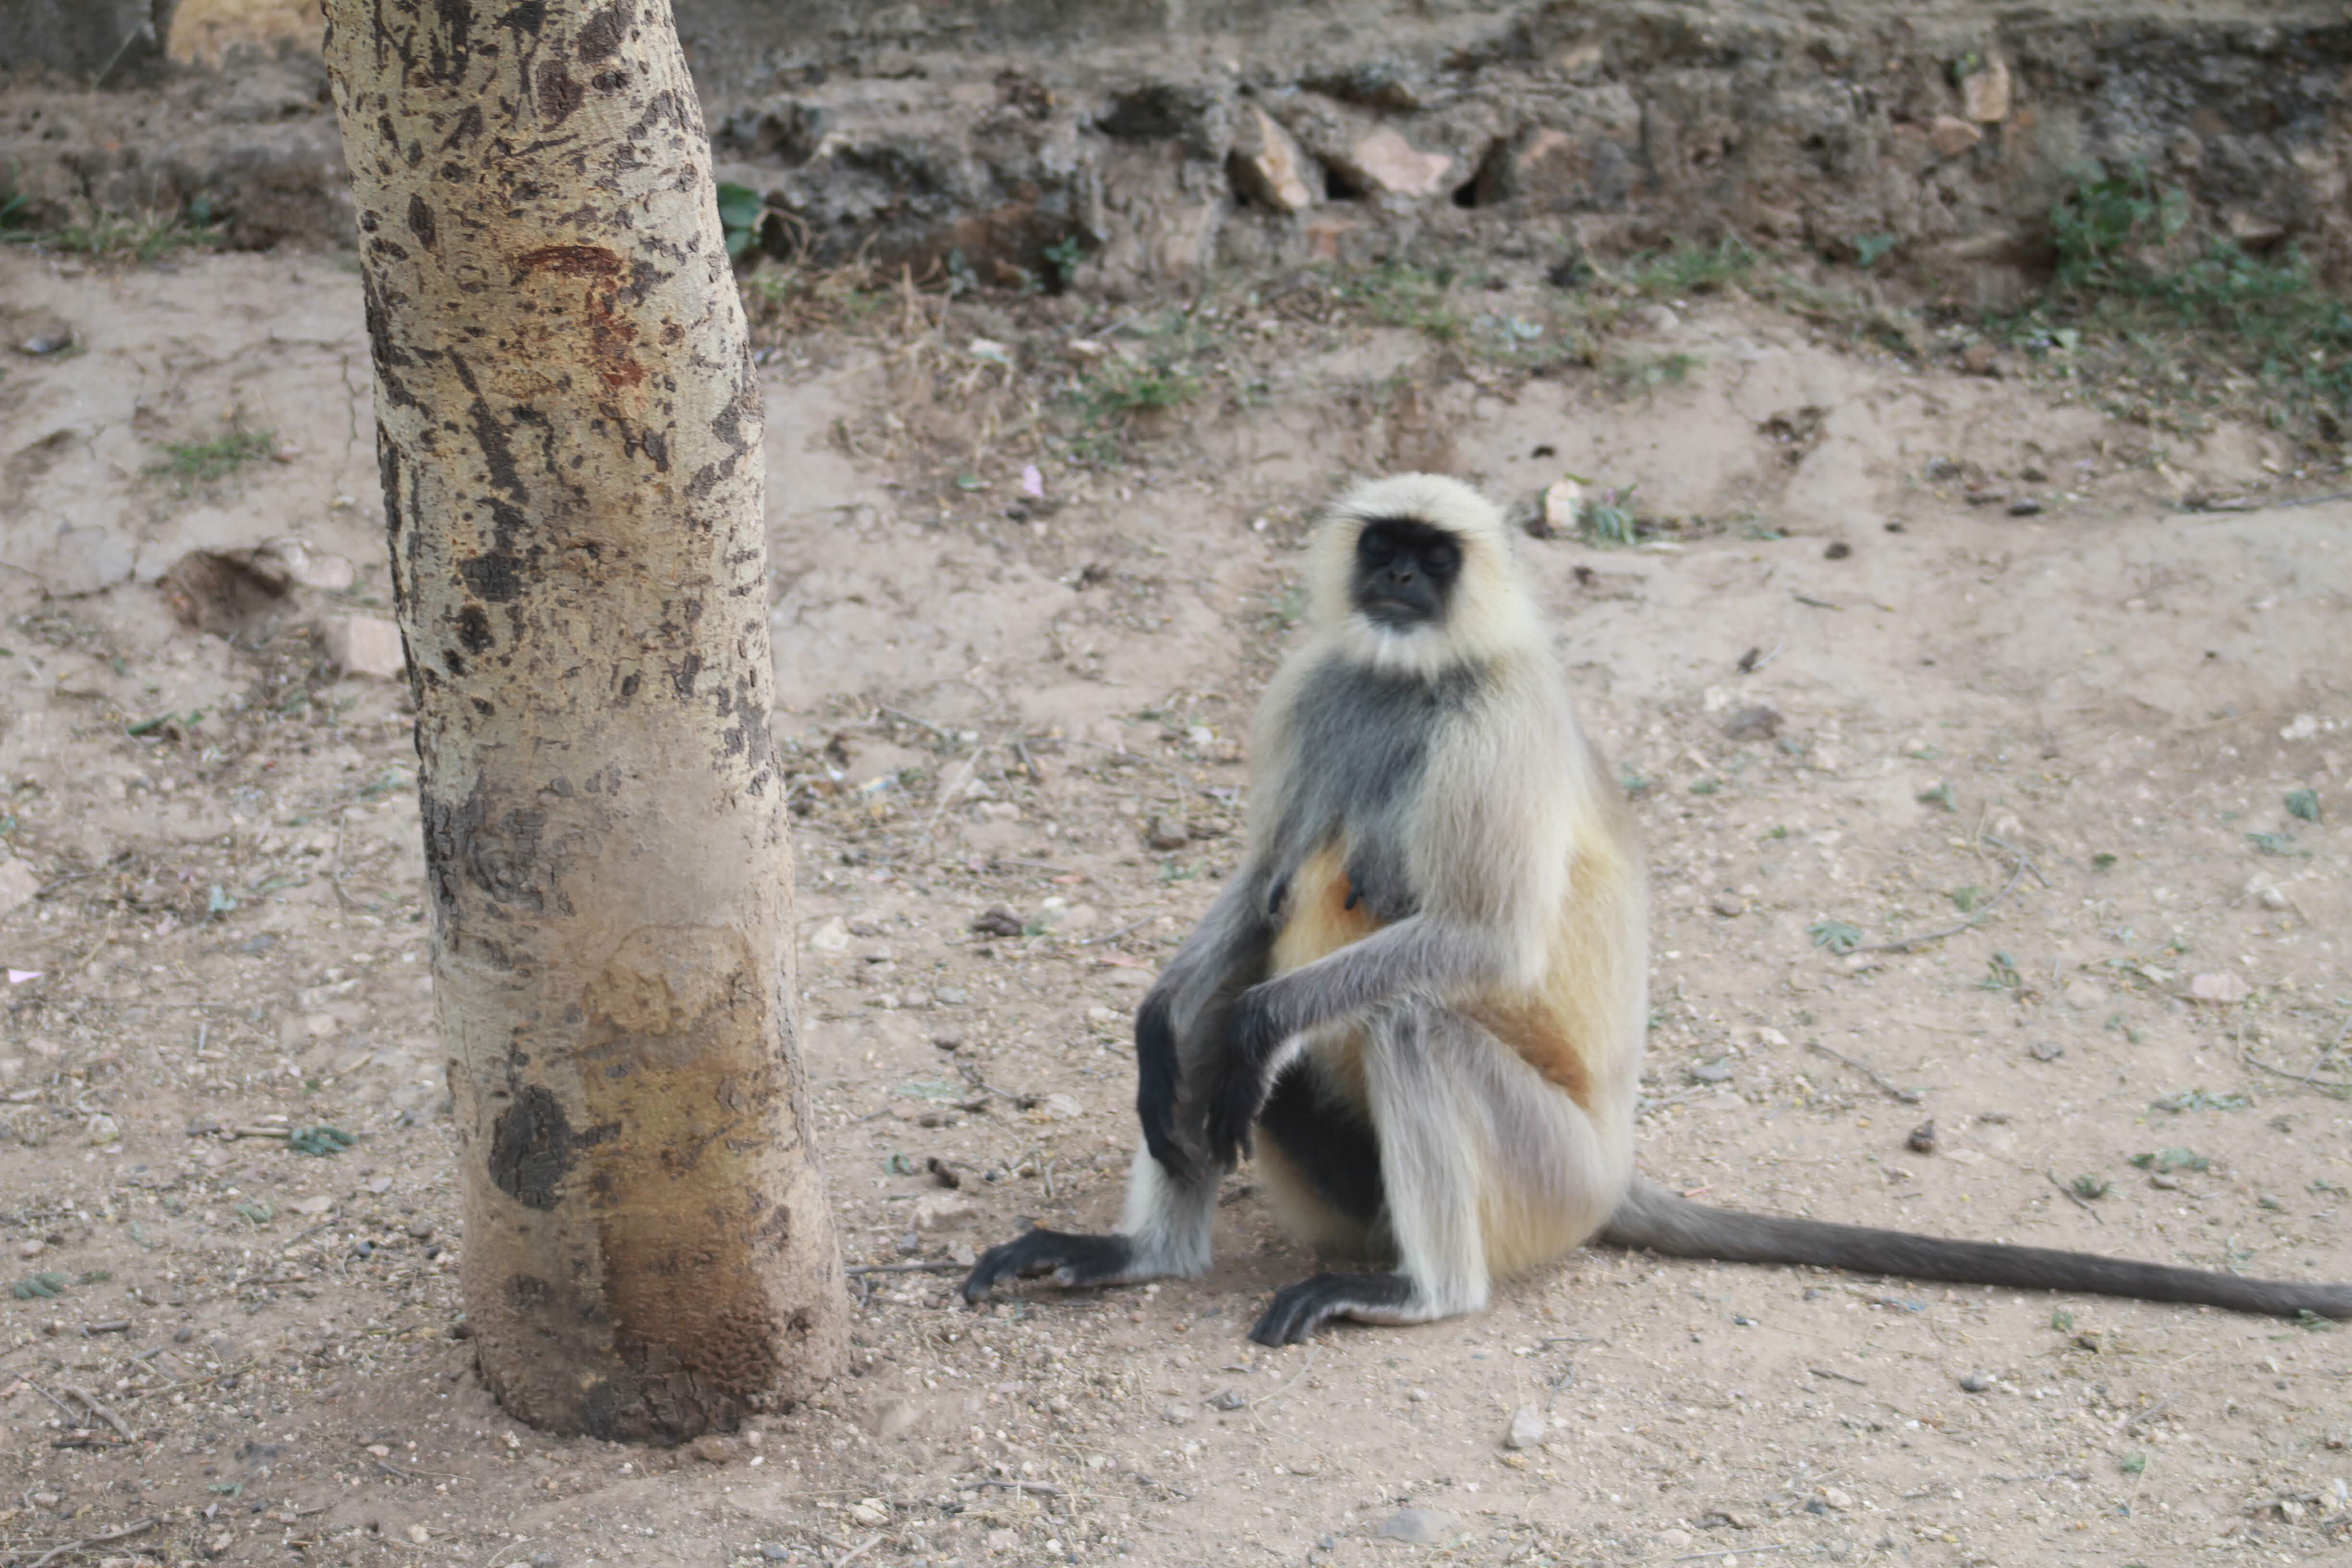 Grey langur, Ranthambore National Park, India